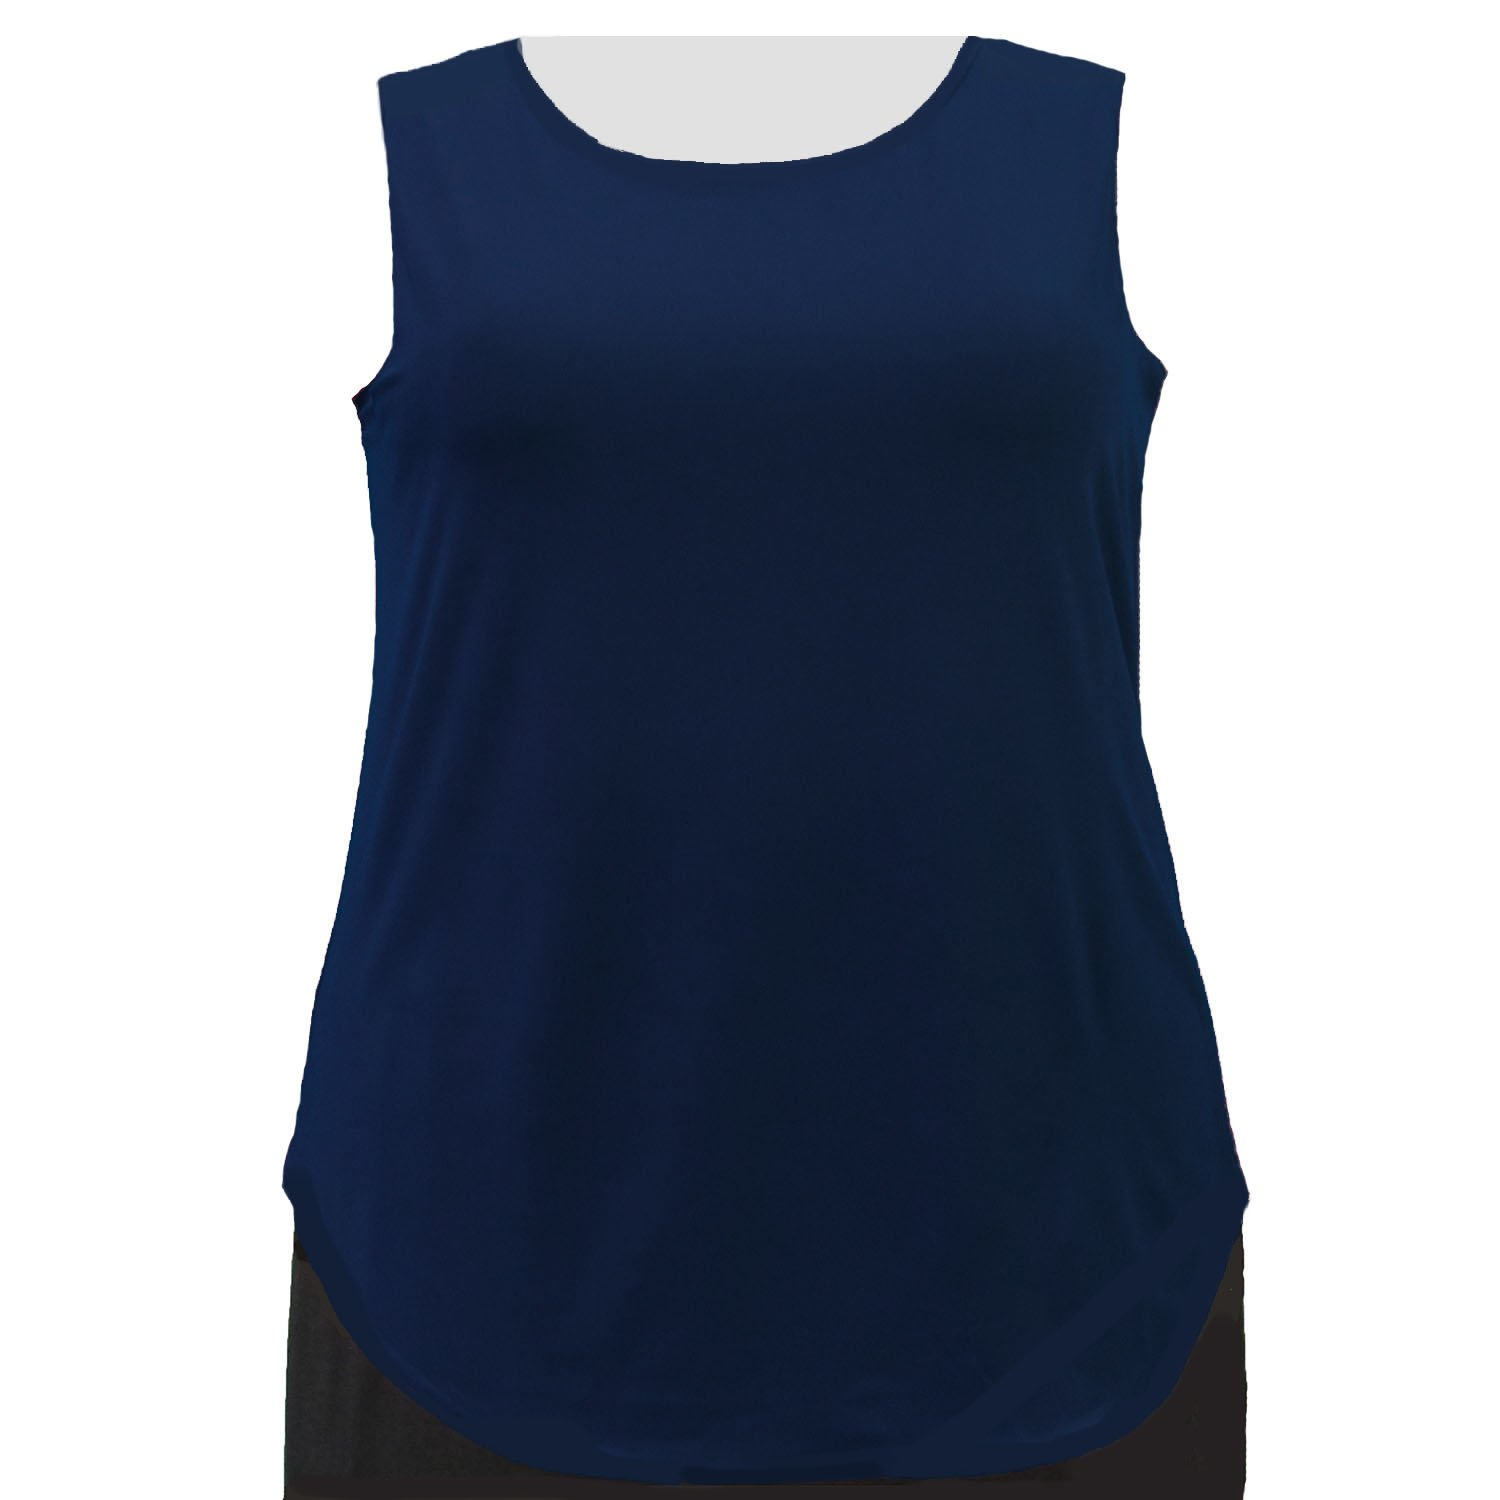 A Personal Touch Navy Tank Top Women's Plus Size Tank Top